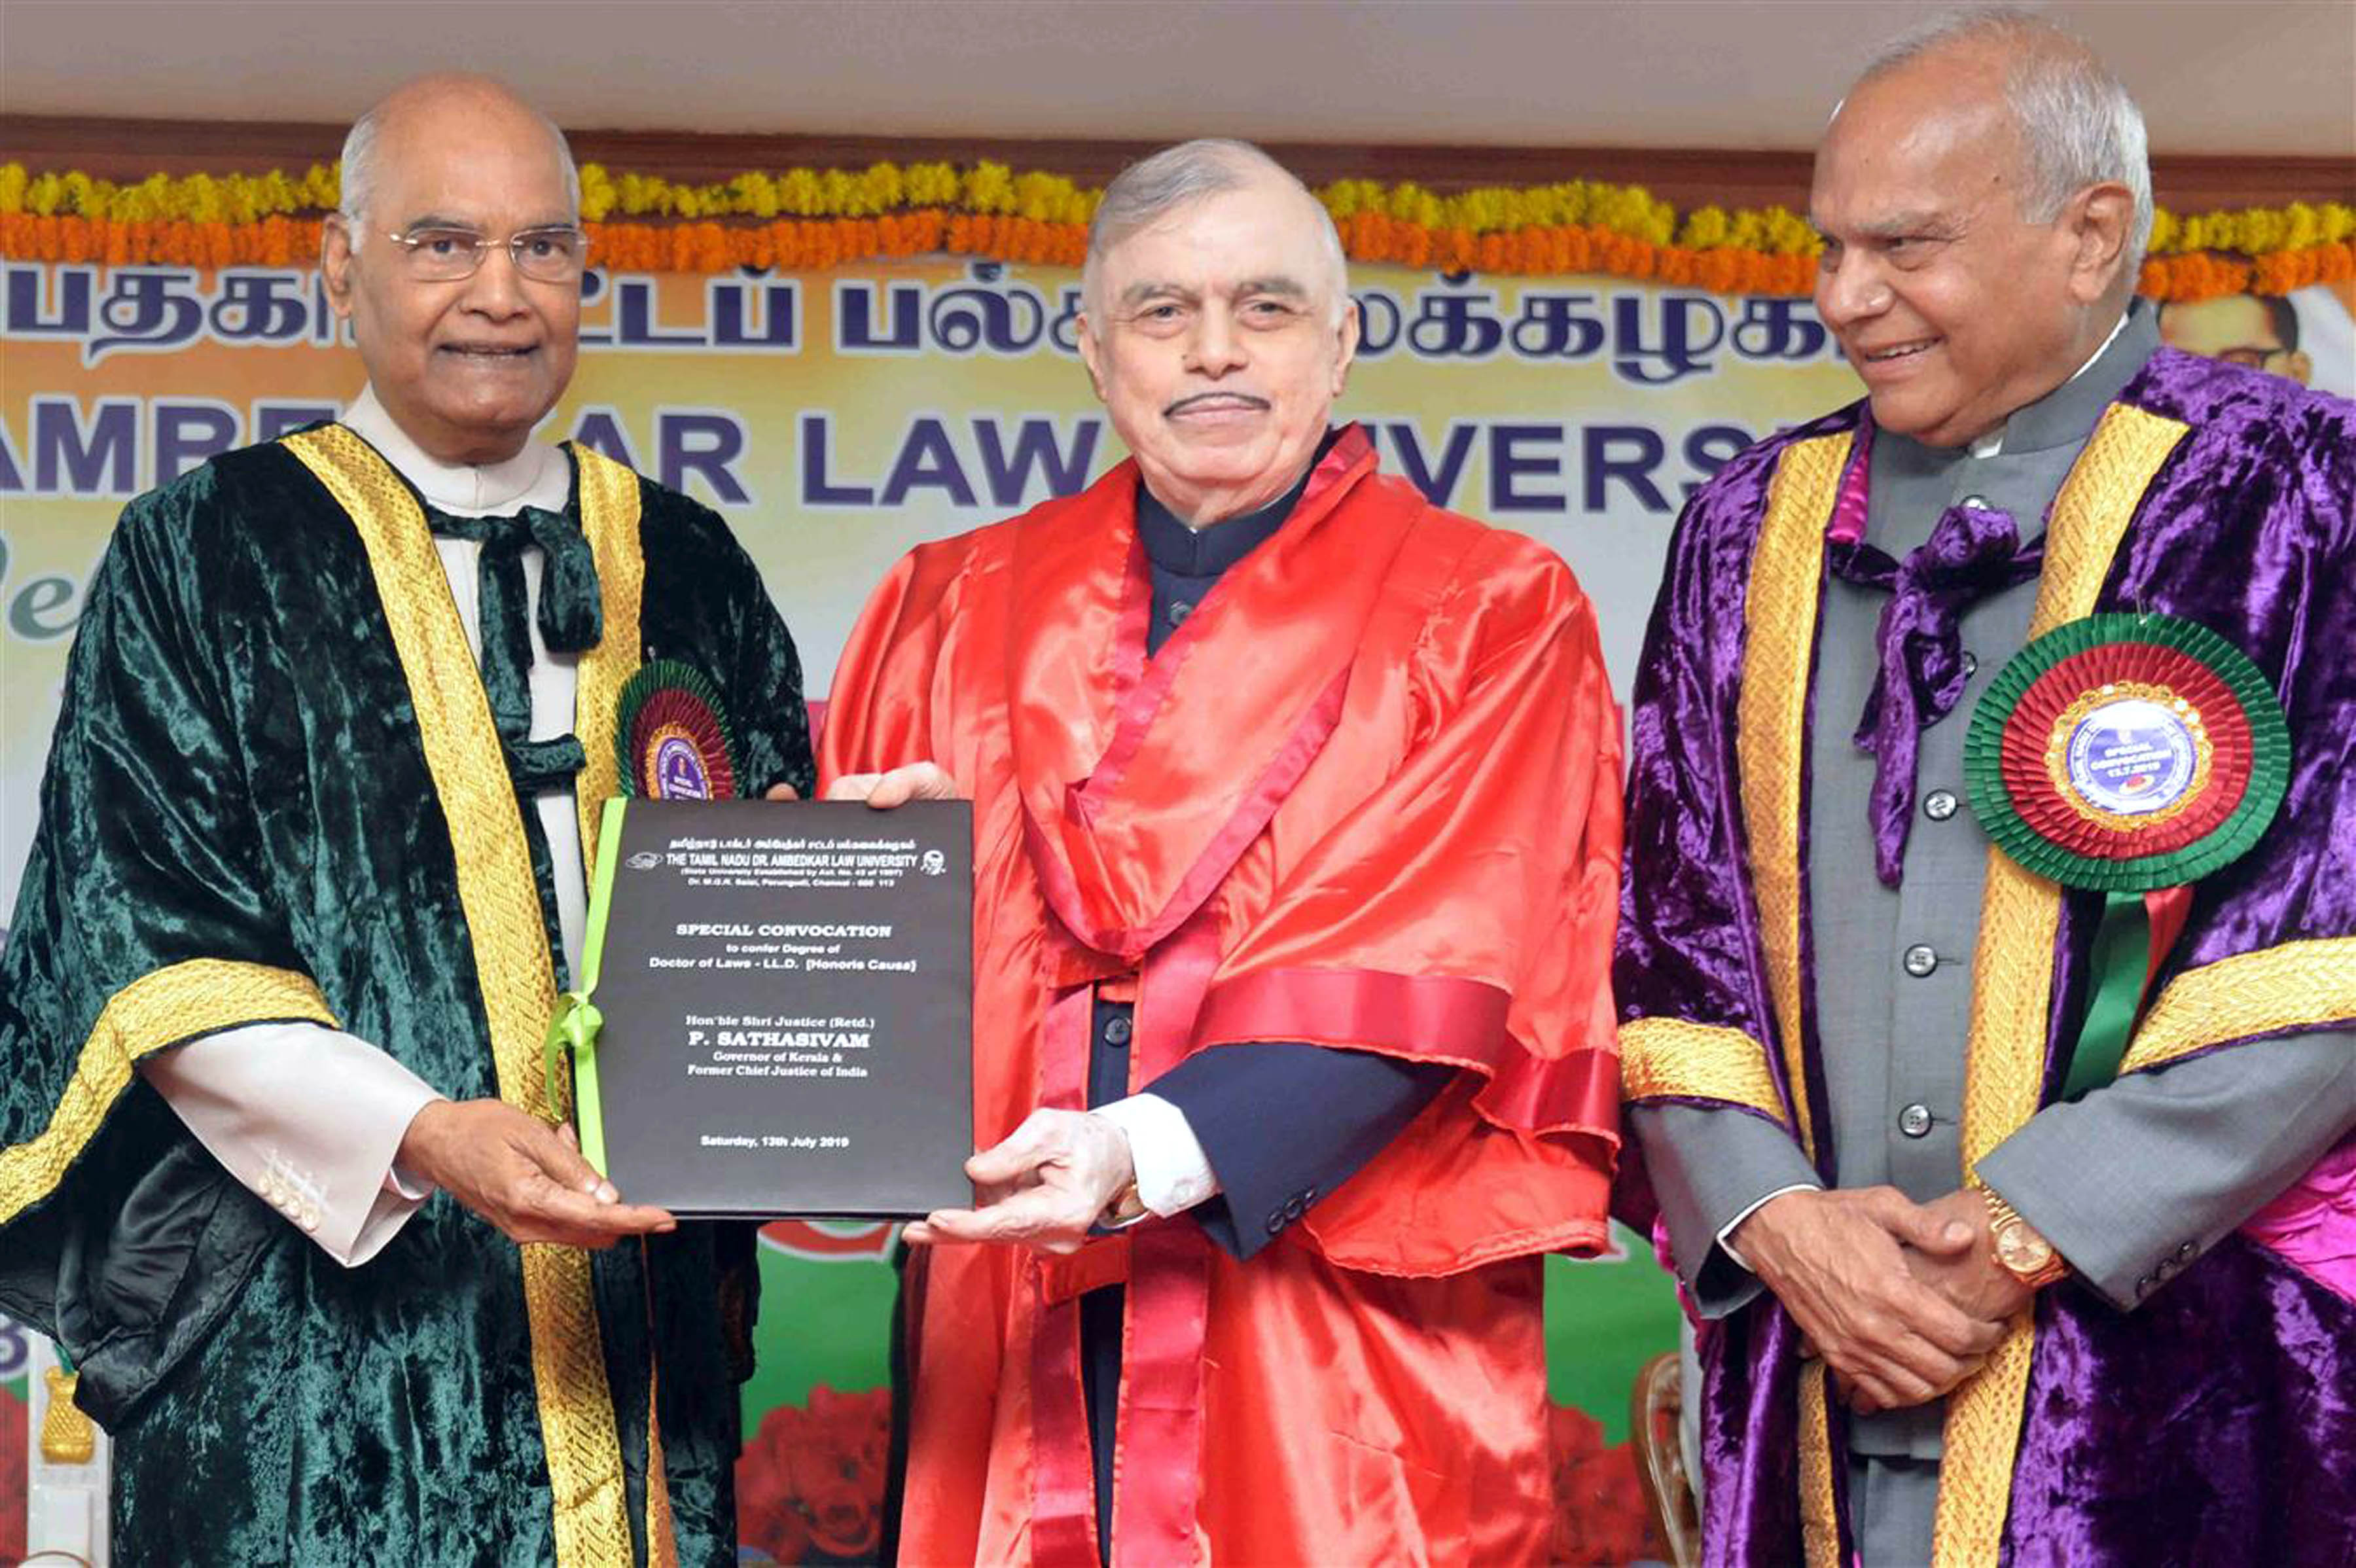 President Ram Nath Kovind conferring the L.L.D. (Honoris Causa) Degree to Kerala Governor and former Chief Justice of India, Justice (Retd) P Sathasivam at a special convocation ceremony of the Tamil Nadu Dr Ambedkar Law University, in Chennai on Saturday. (UNI)